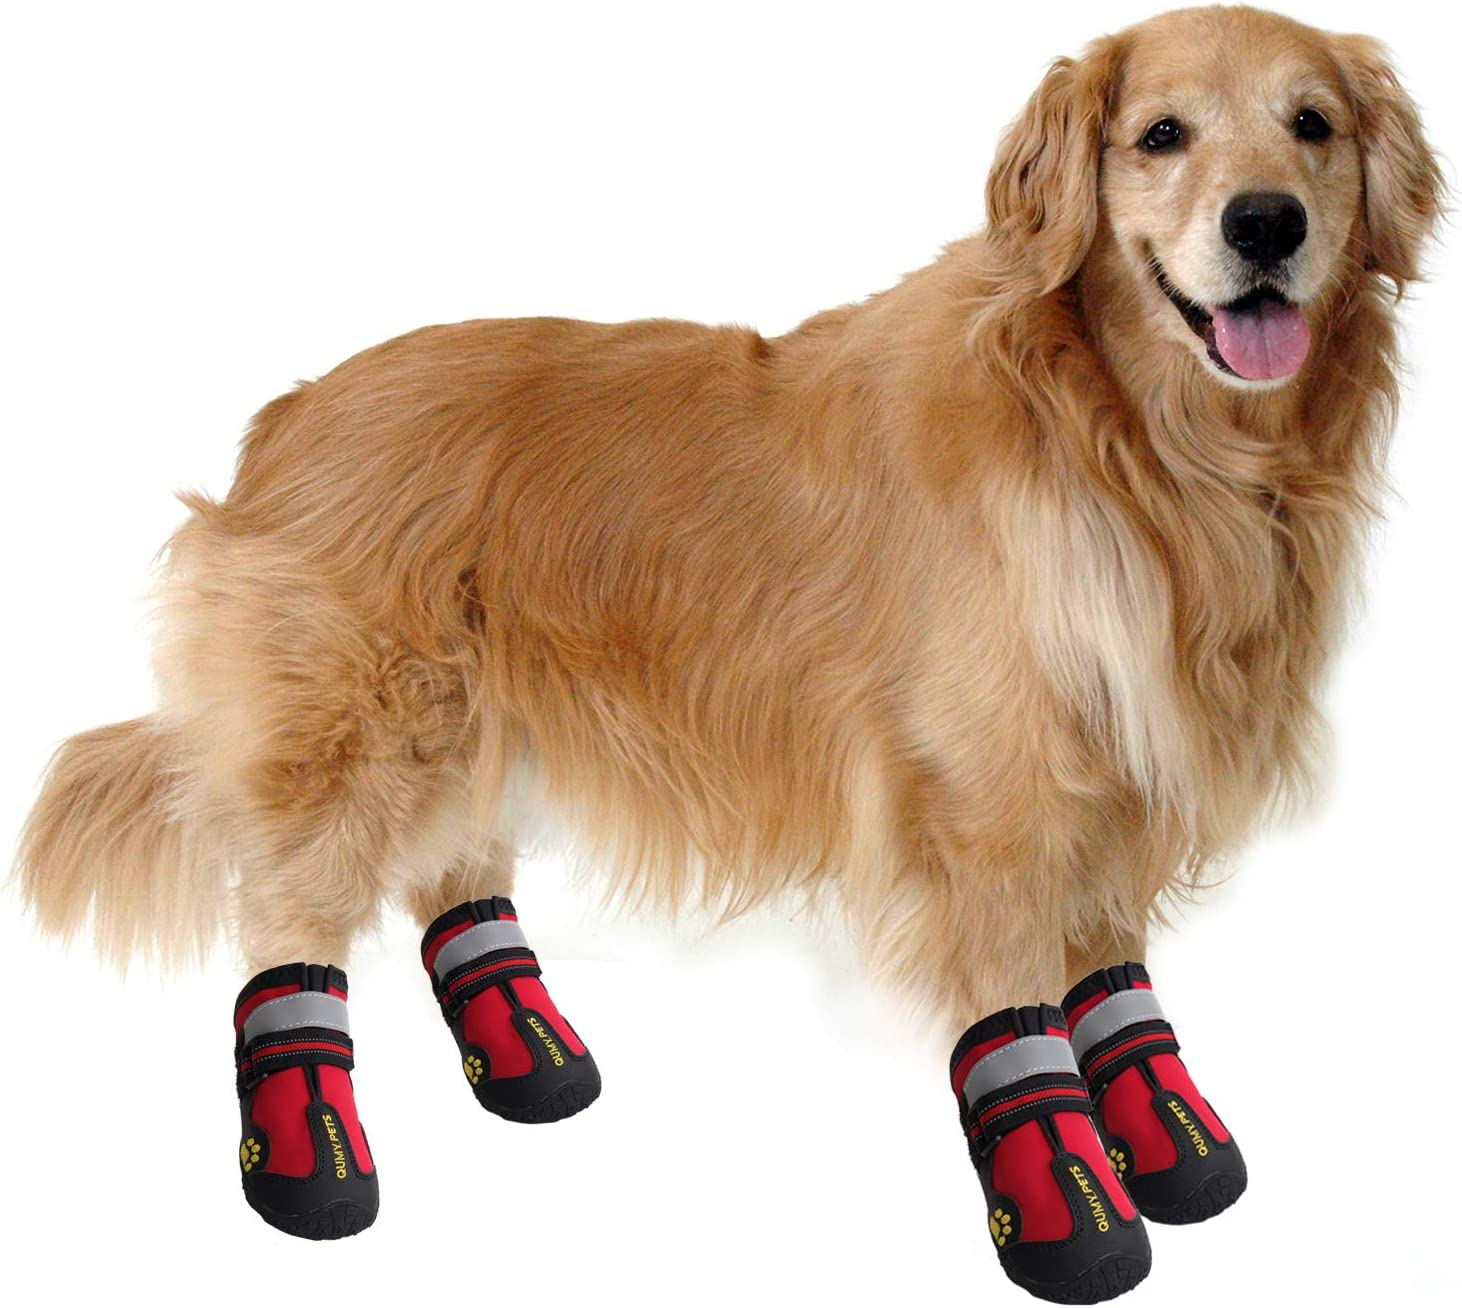 QUMY Dog Boots Waterproof Shoes for Dogs with Reflective Velcro Rugged Anti-Slip Sole Black 4PCS , Red LW Size 2: 2.4x1.7